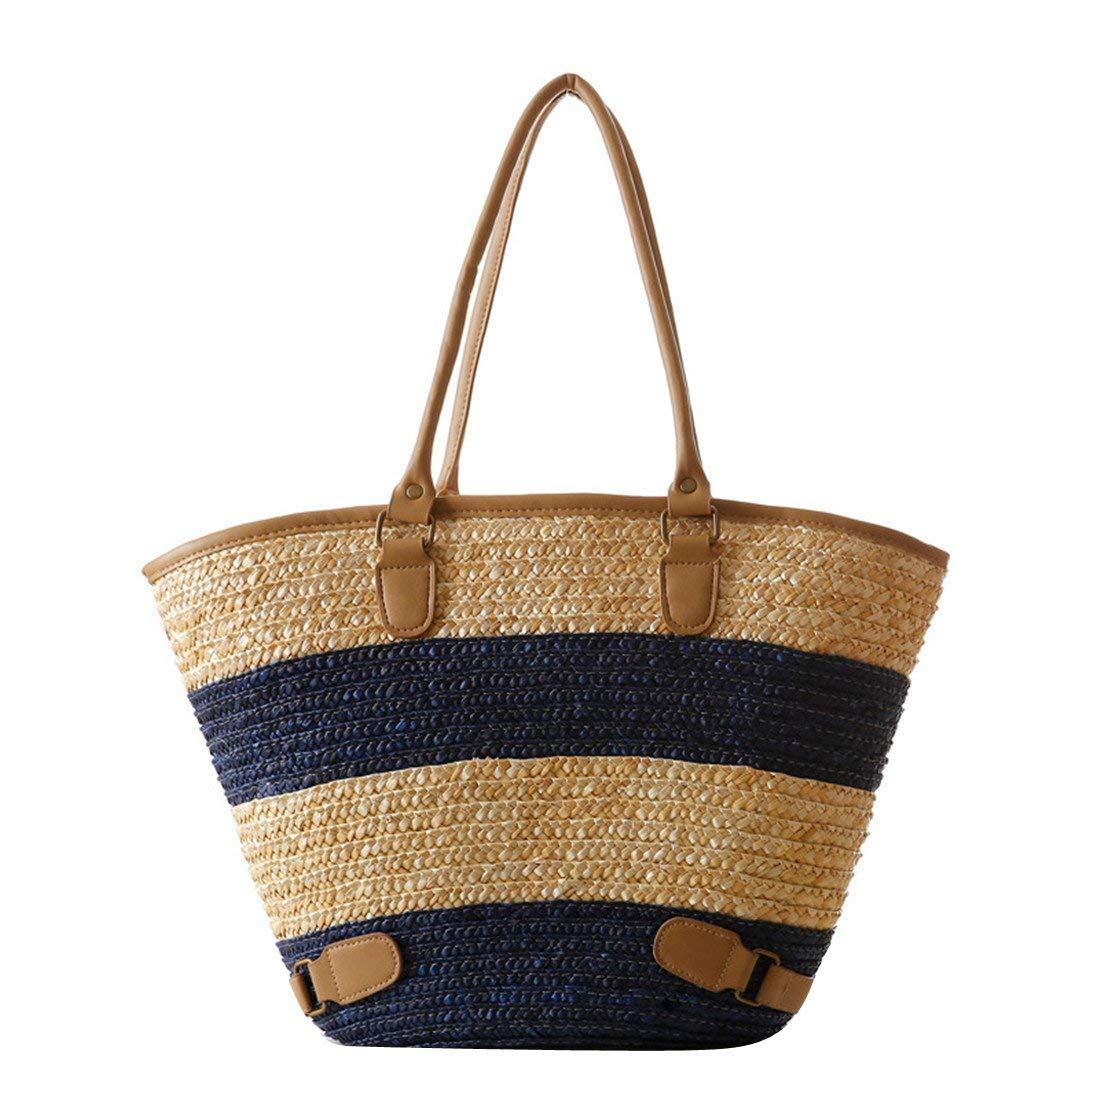 5aff6c0078de Get Quotations · Luckywe Womens Purses and Handbags Ladies Minimalism Straw  Bag Summer holiday Stripe Beach Bag